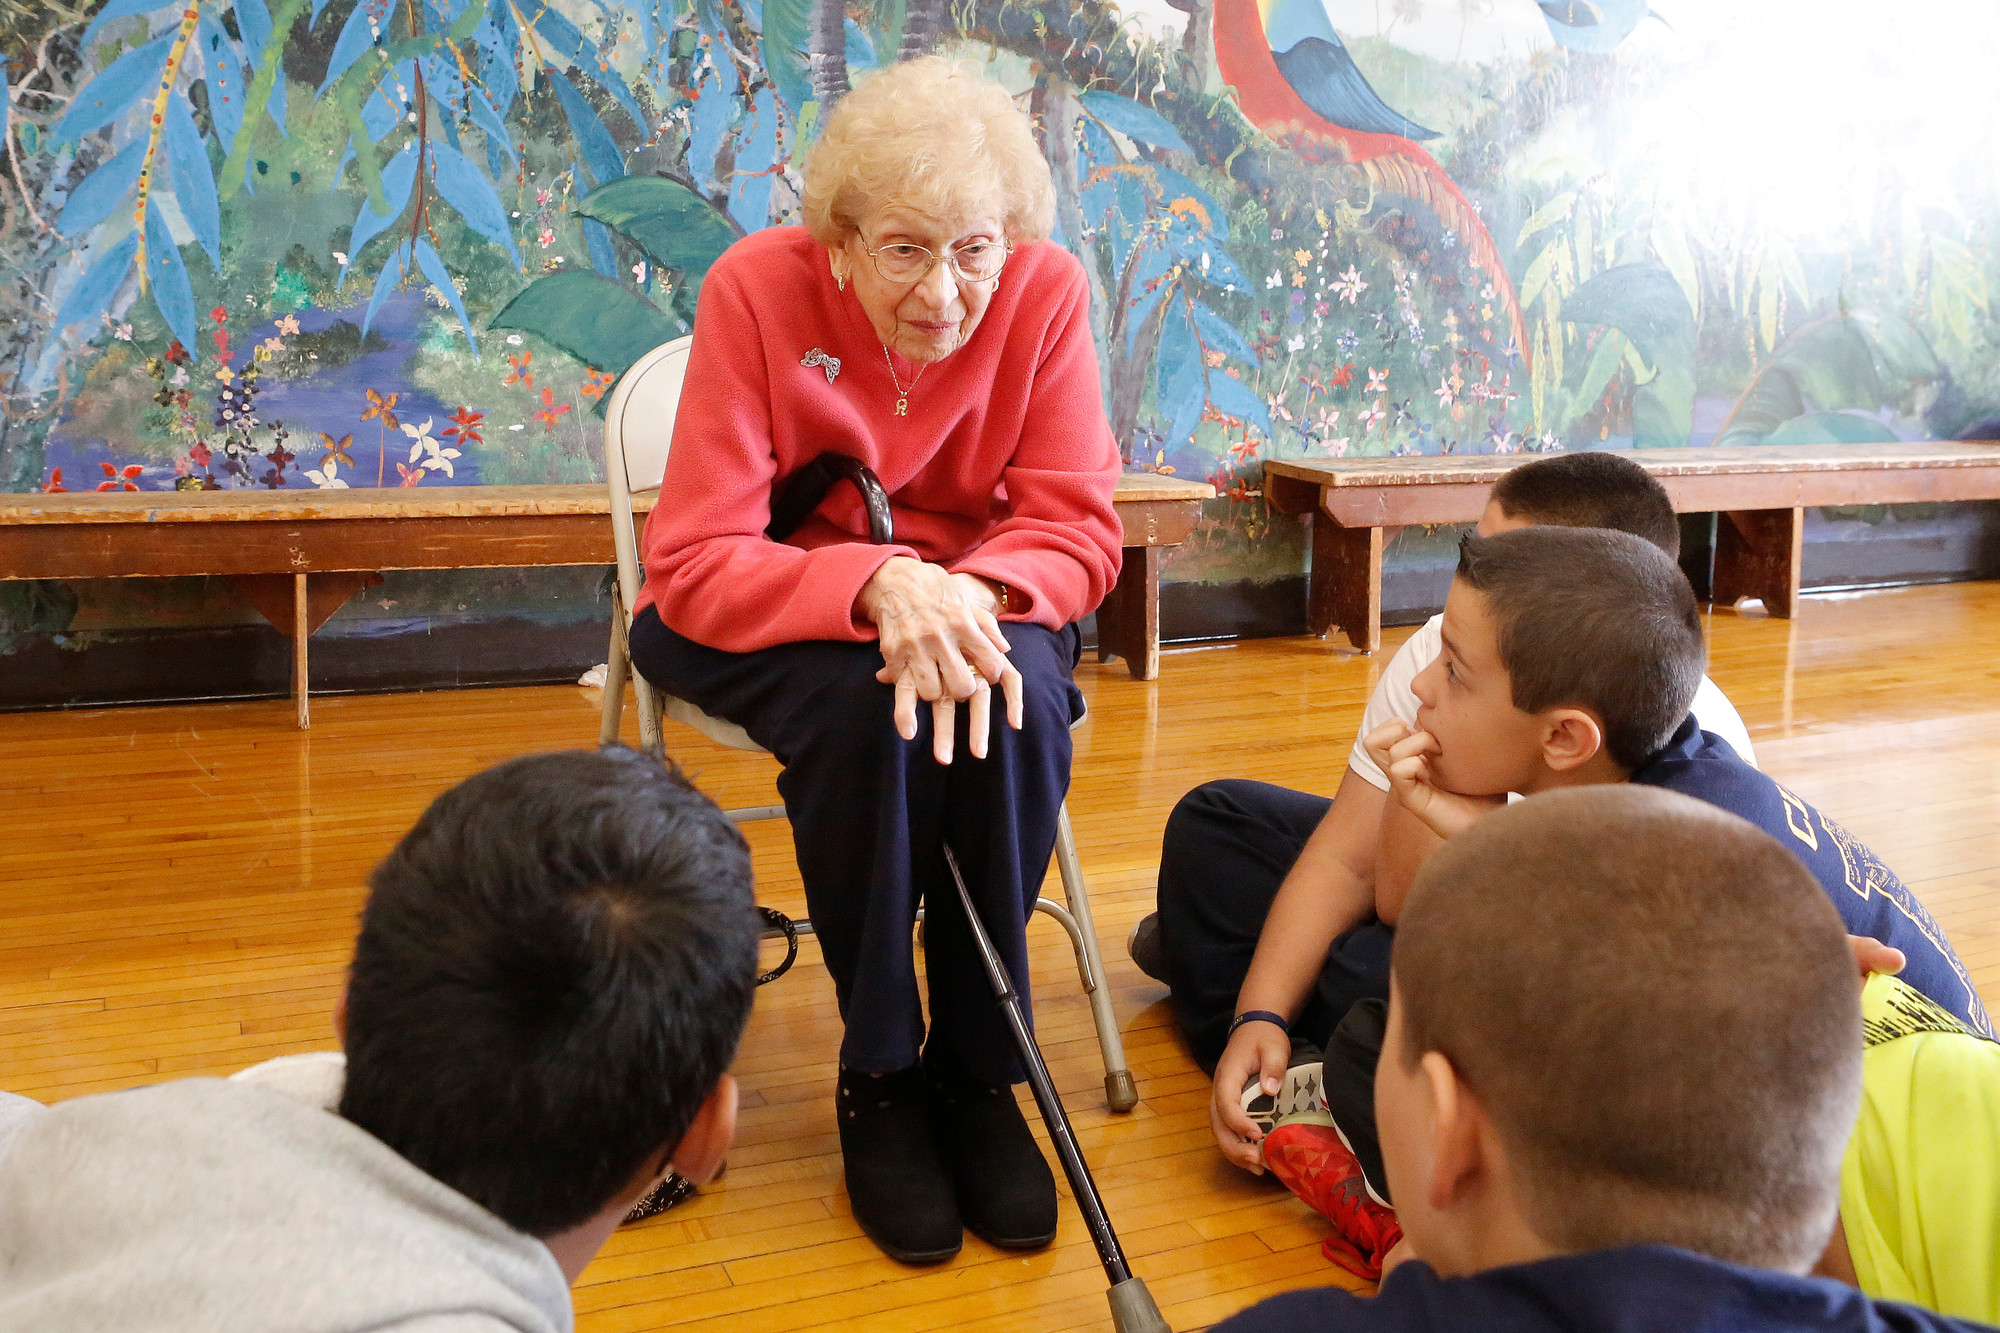 Adeline Cook, a former seventh-grade teacher who started her career in 1950, spoke with Newbridge Road students about how things have changed since she worked in the building.